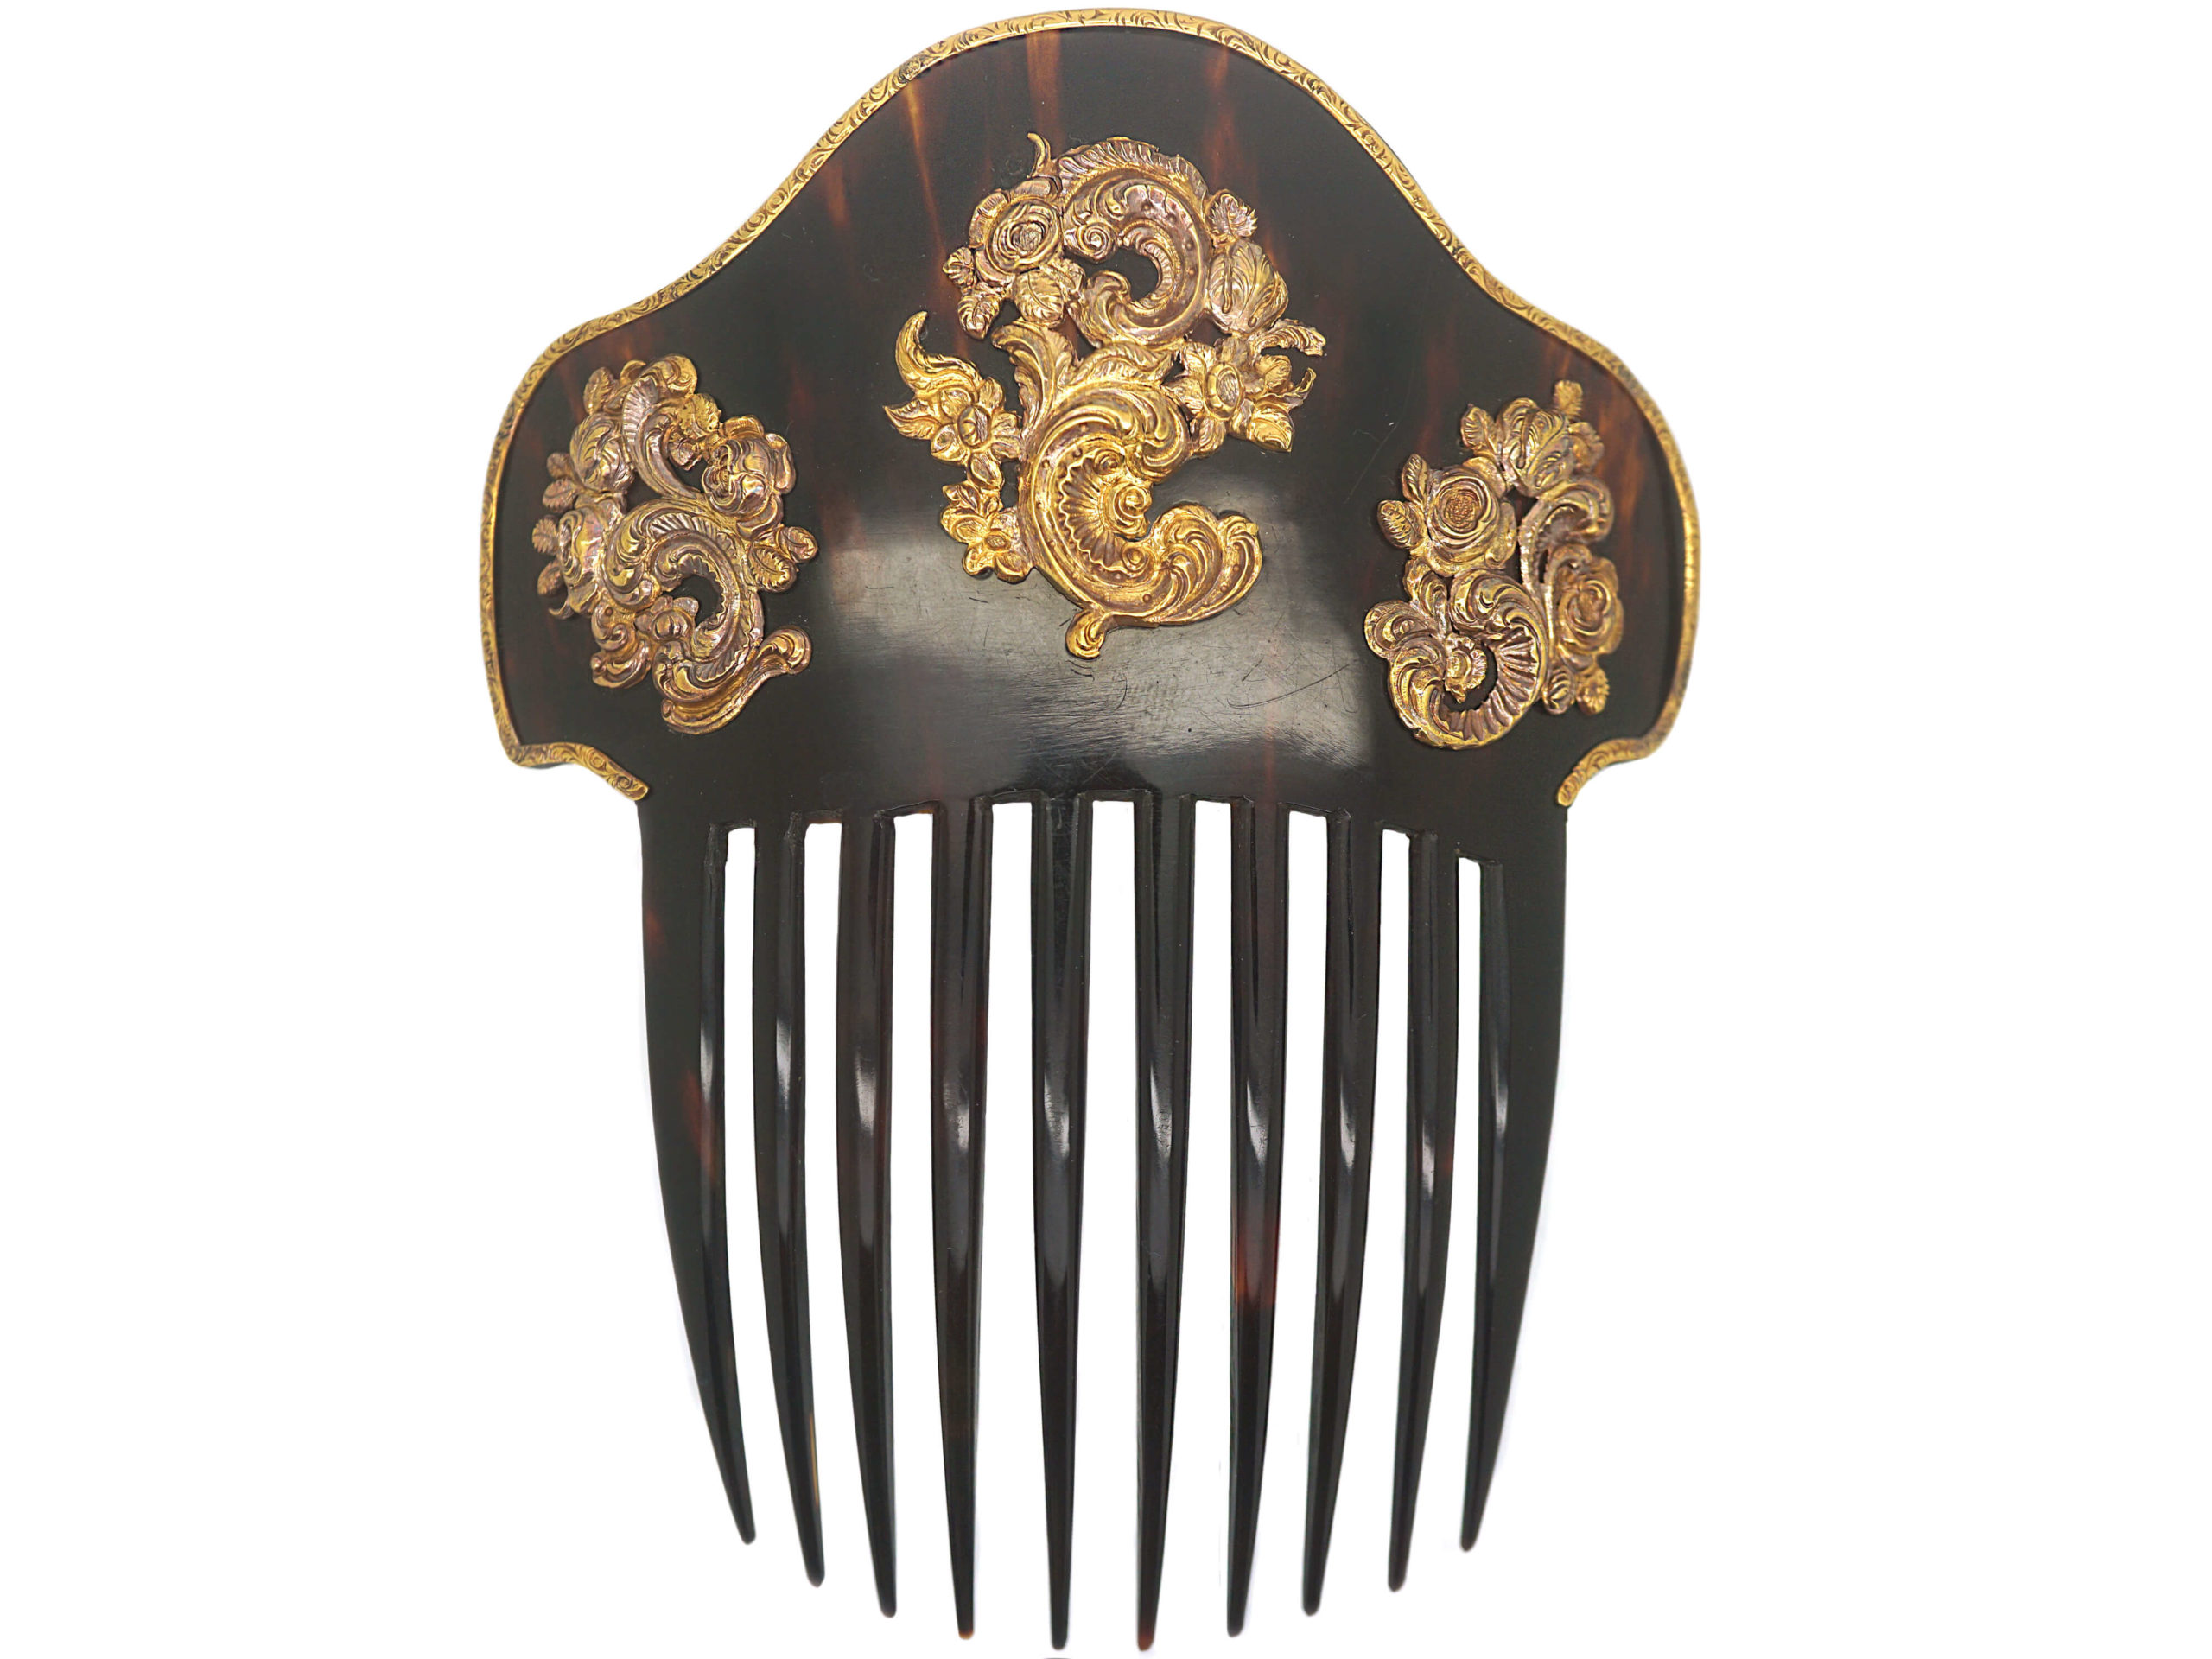 Large Victorian Tortoiseshell Hair Comb With Gold Cornucopias of Roses